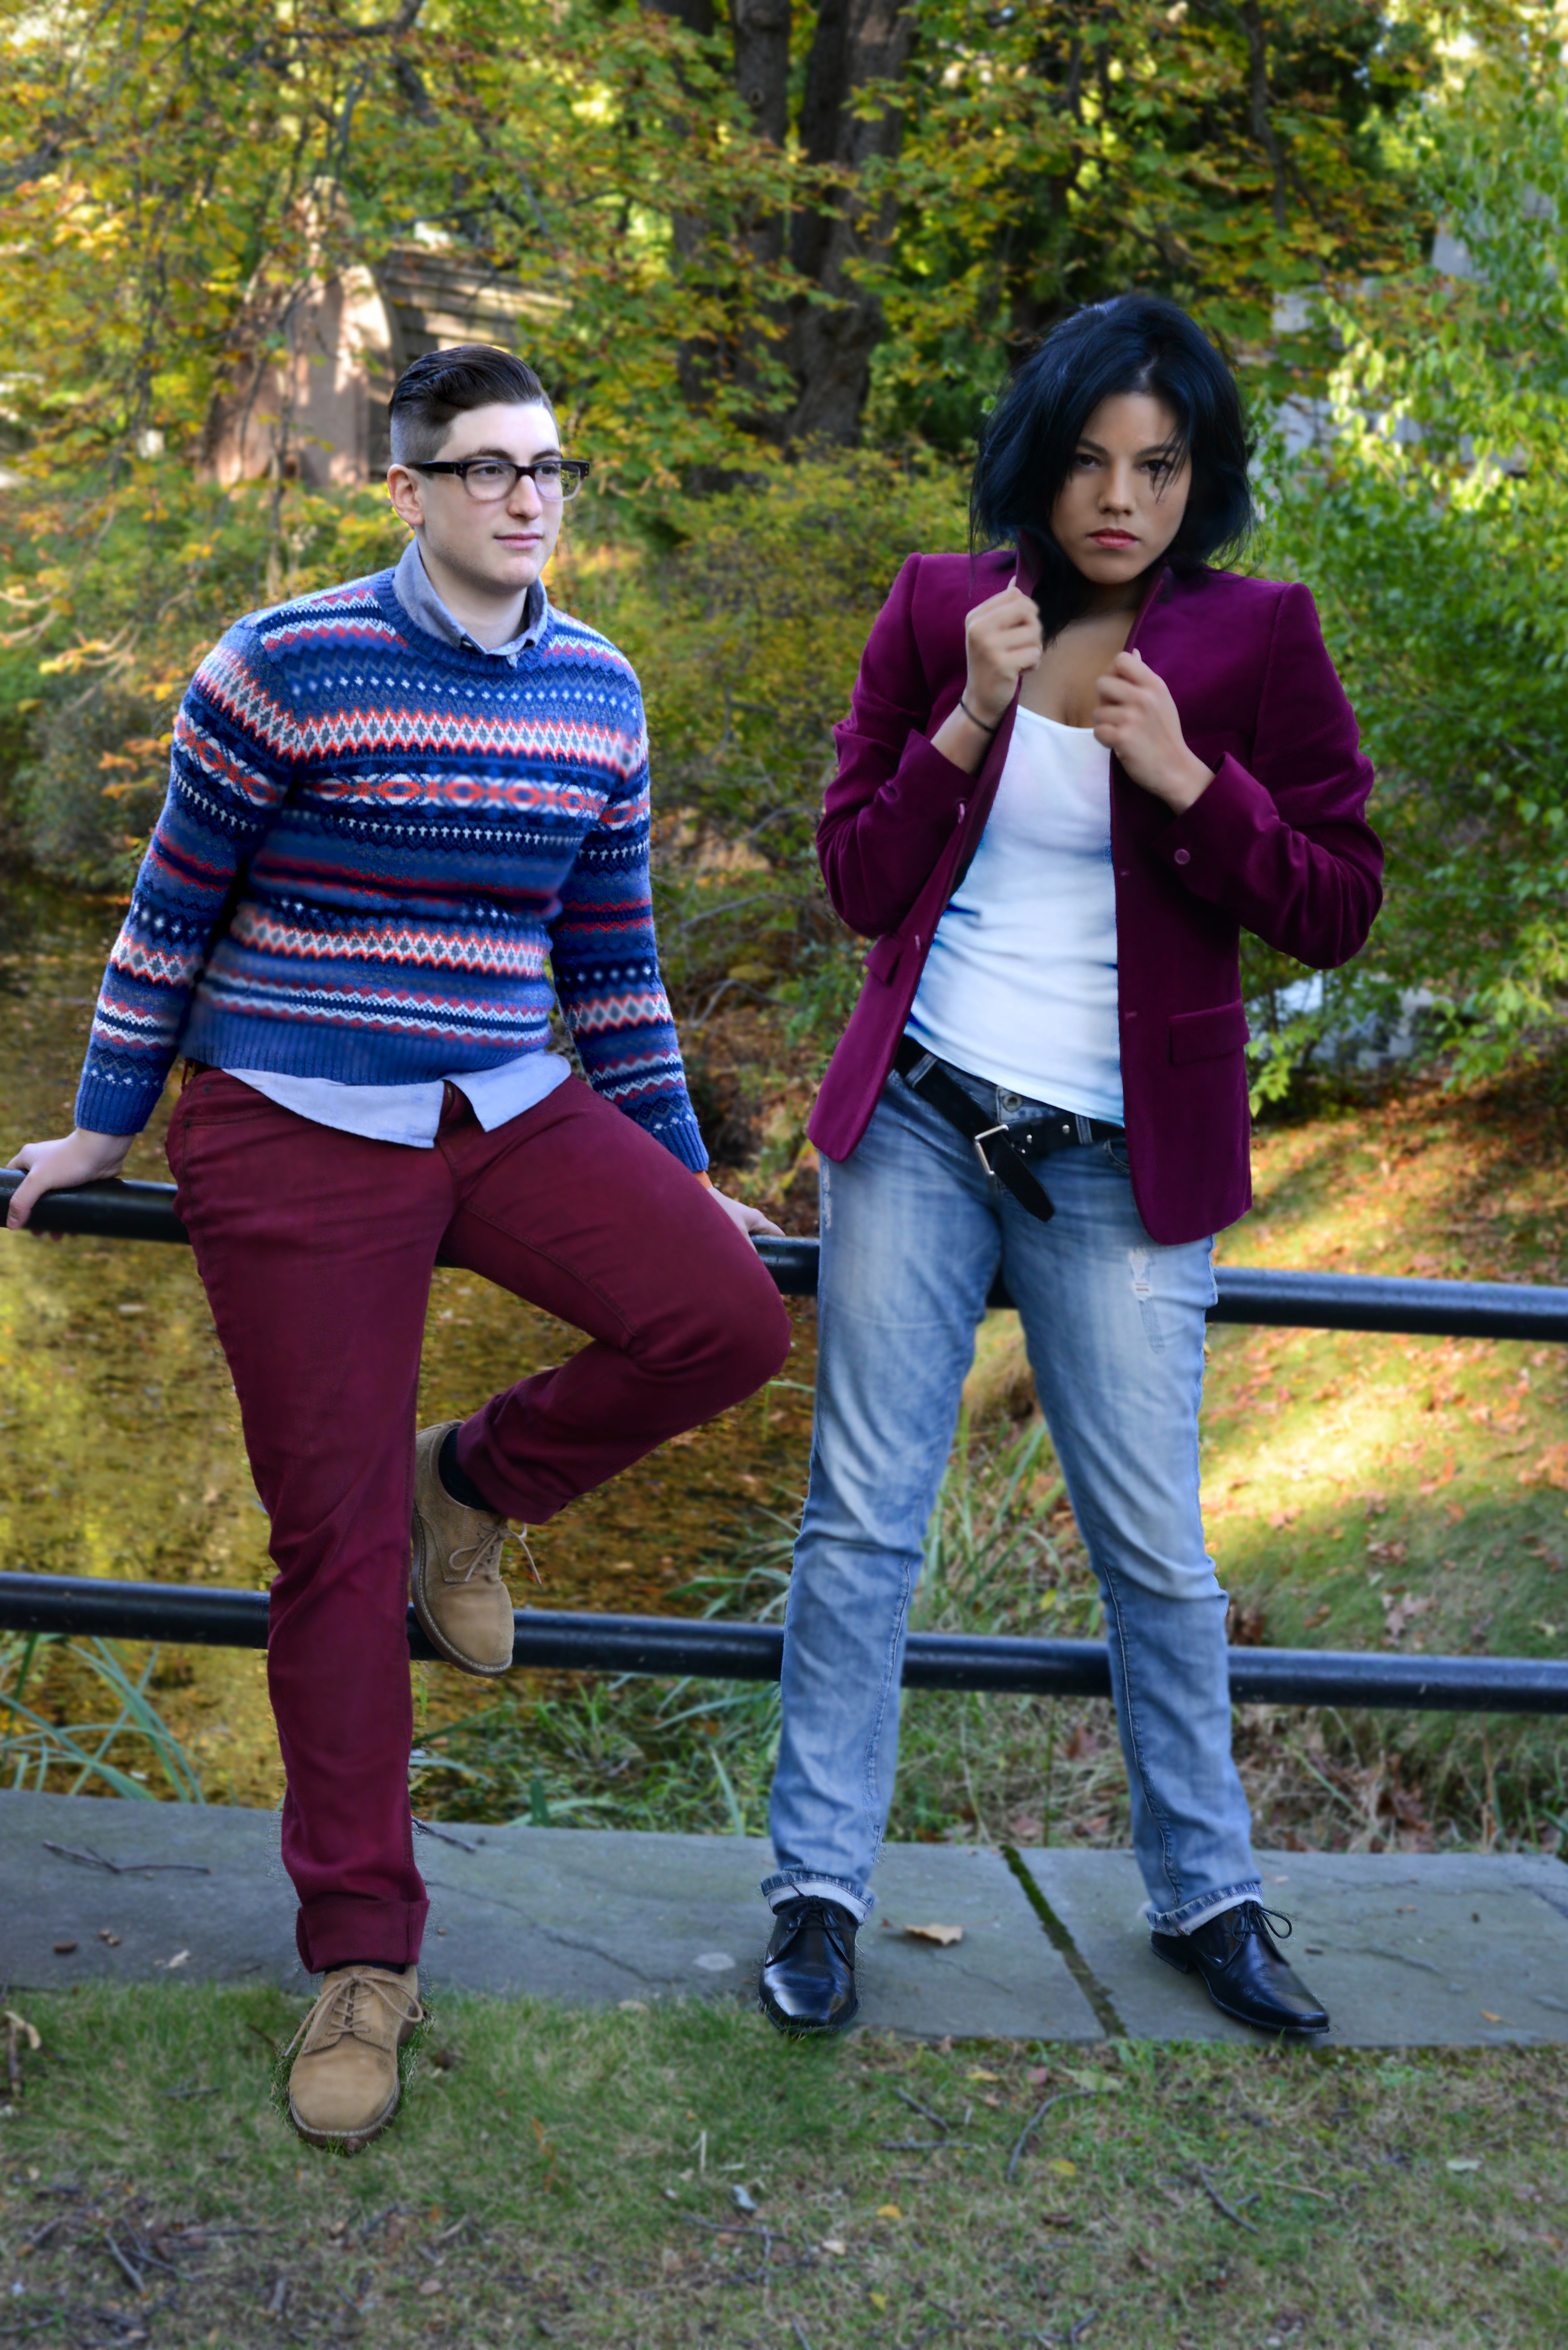 Ru (right) dressing up casual outfit with  Topman  velvet blazer. Photo by Sam Murray.